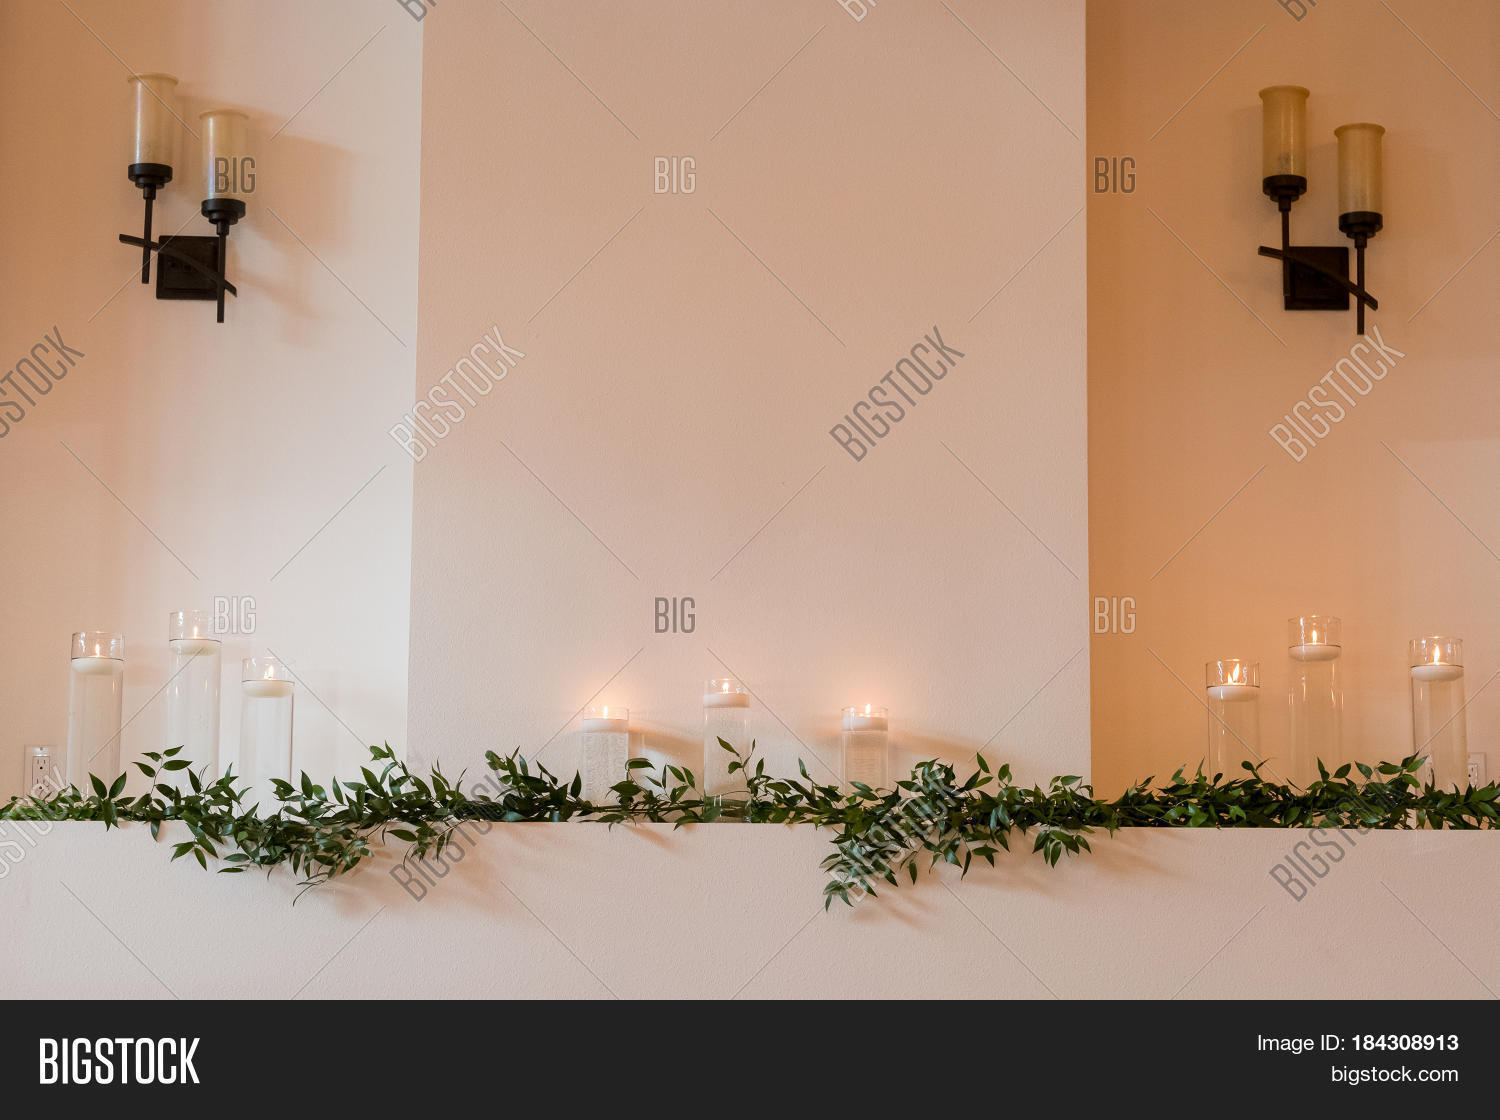 Candles Used Decor Image Photo Free Trial Bigstock